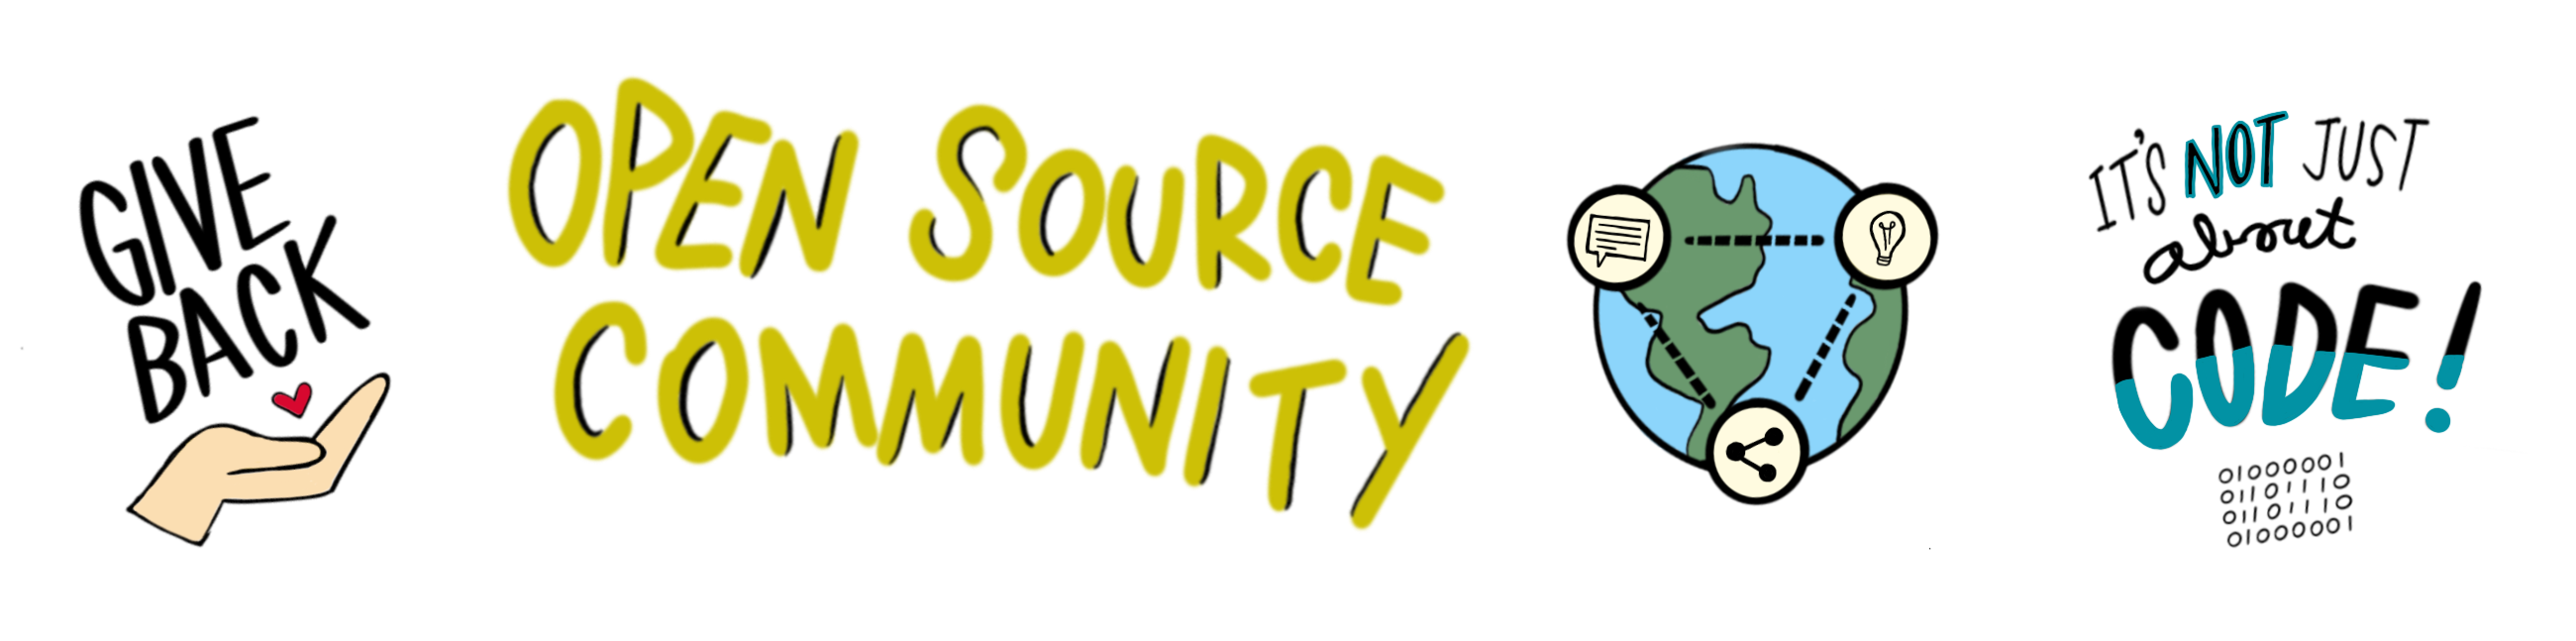 Open Source Community Sketchnote